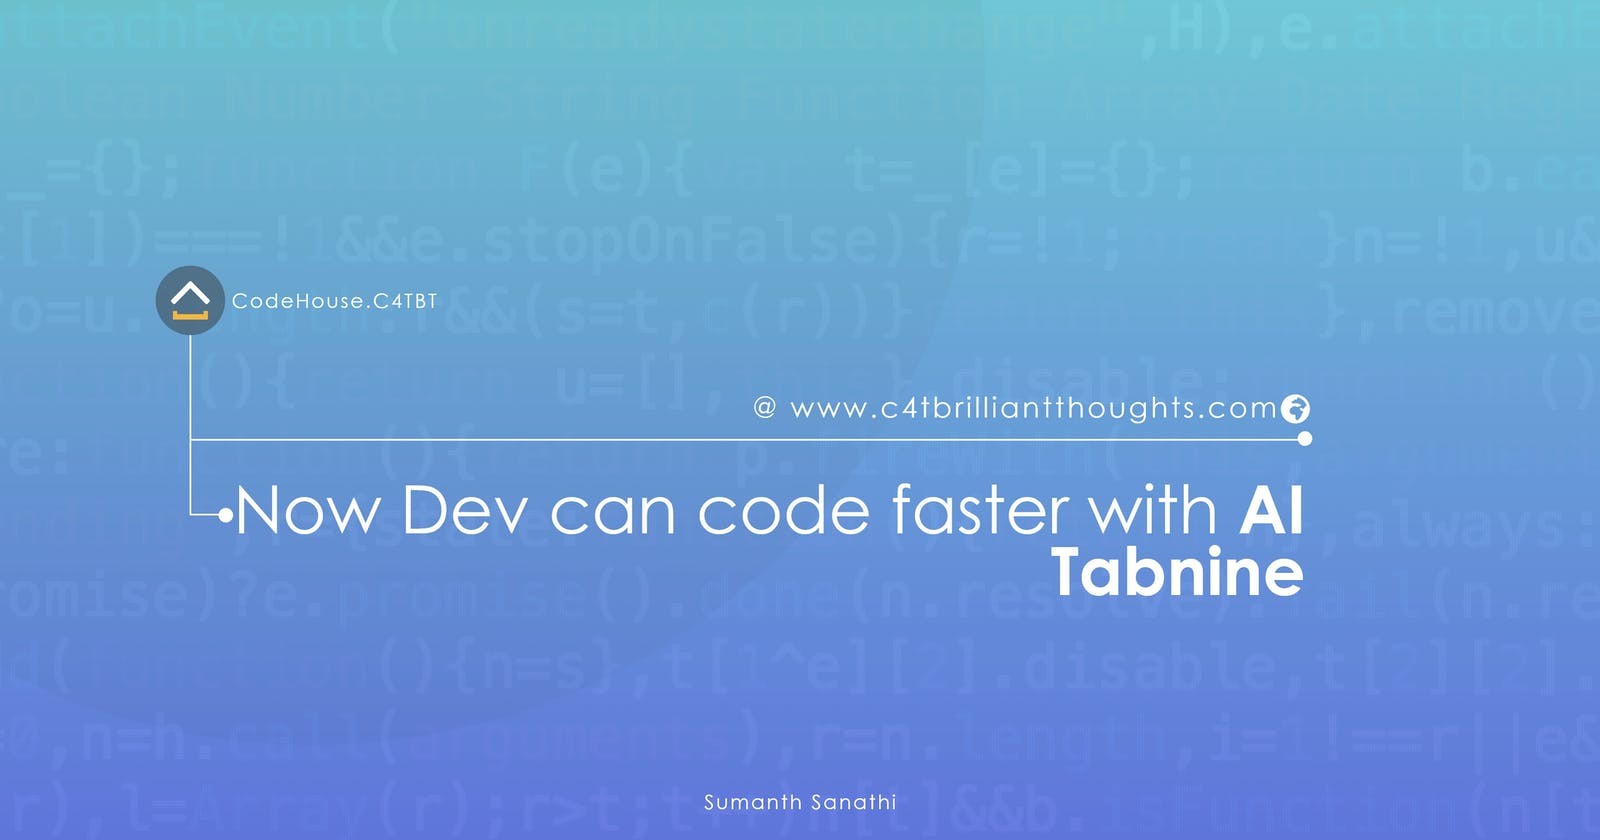 Now Dev can code faster with AI